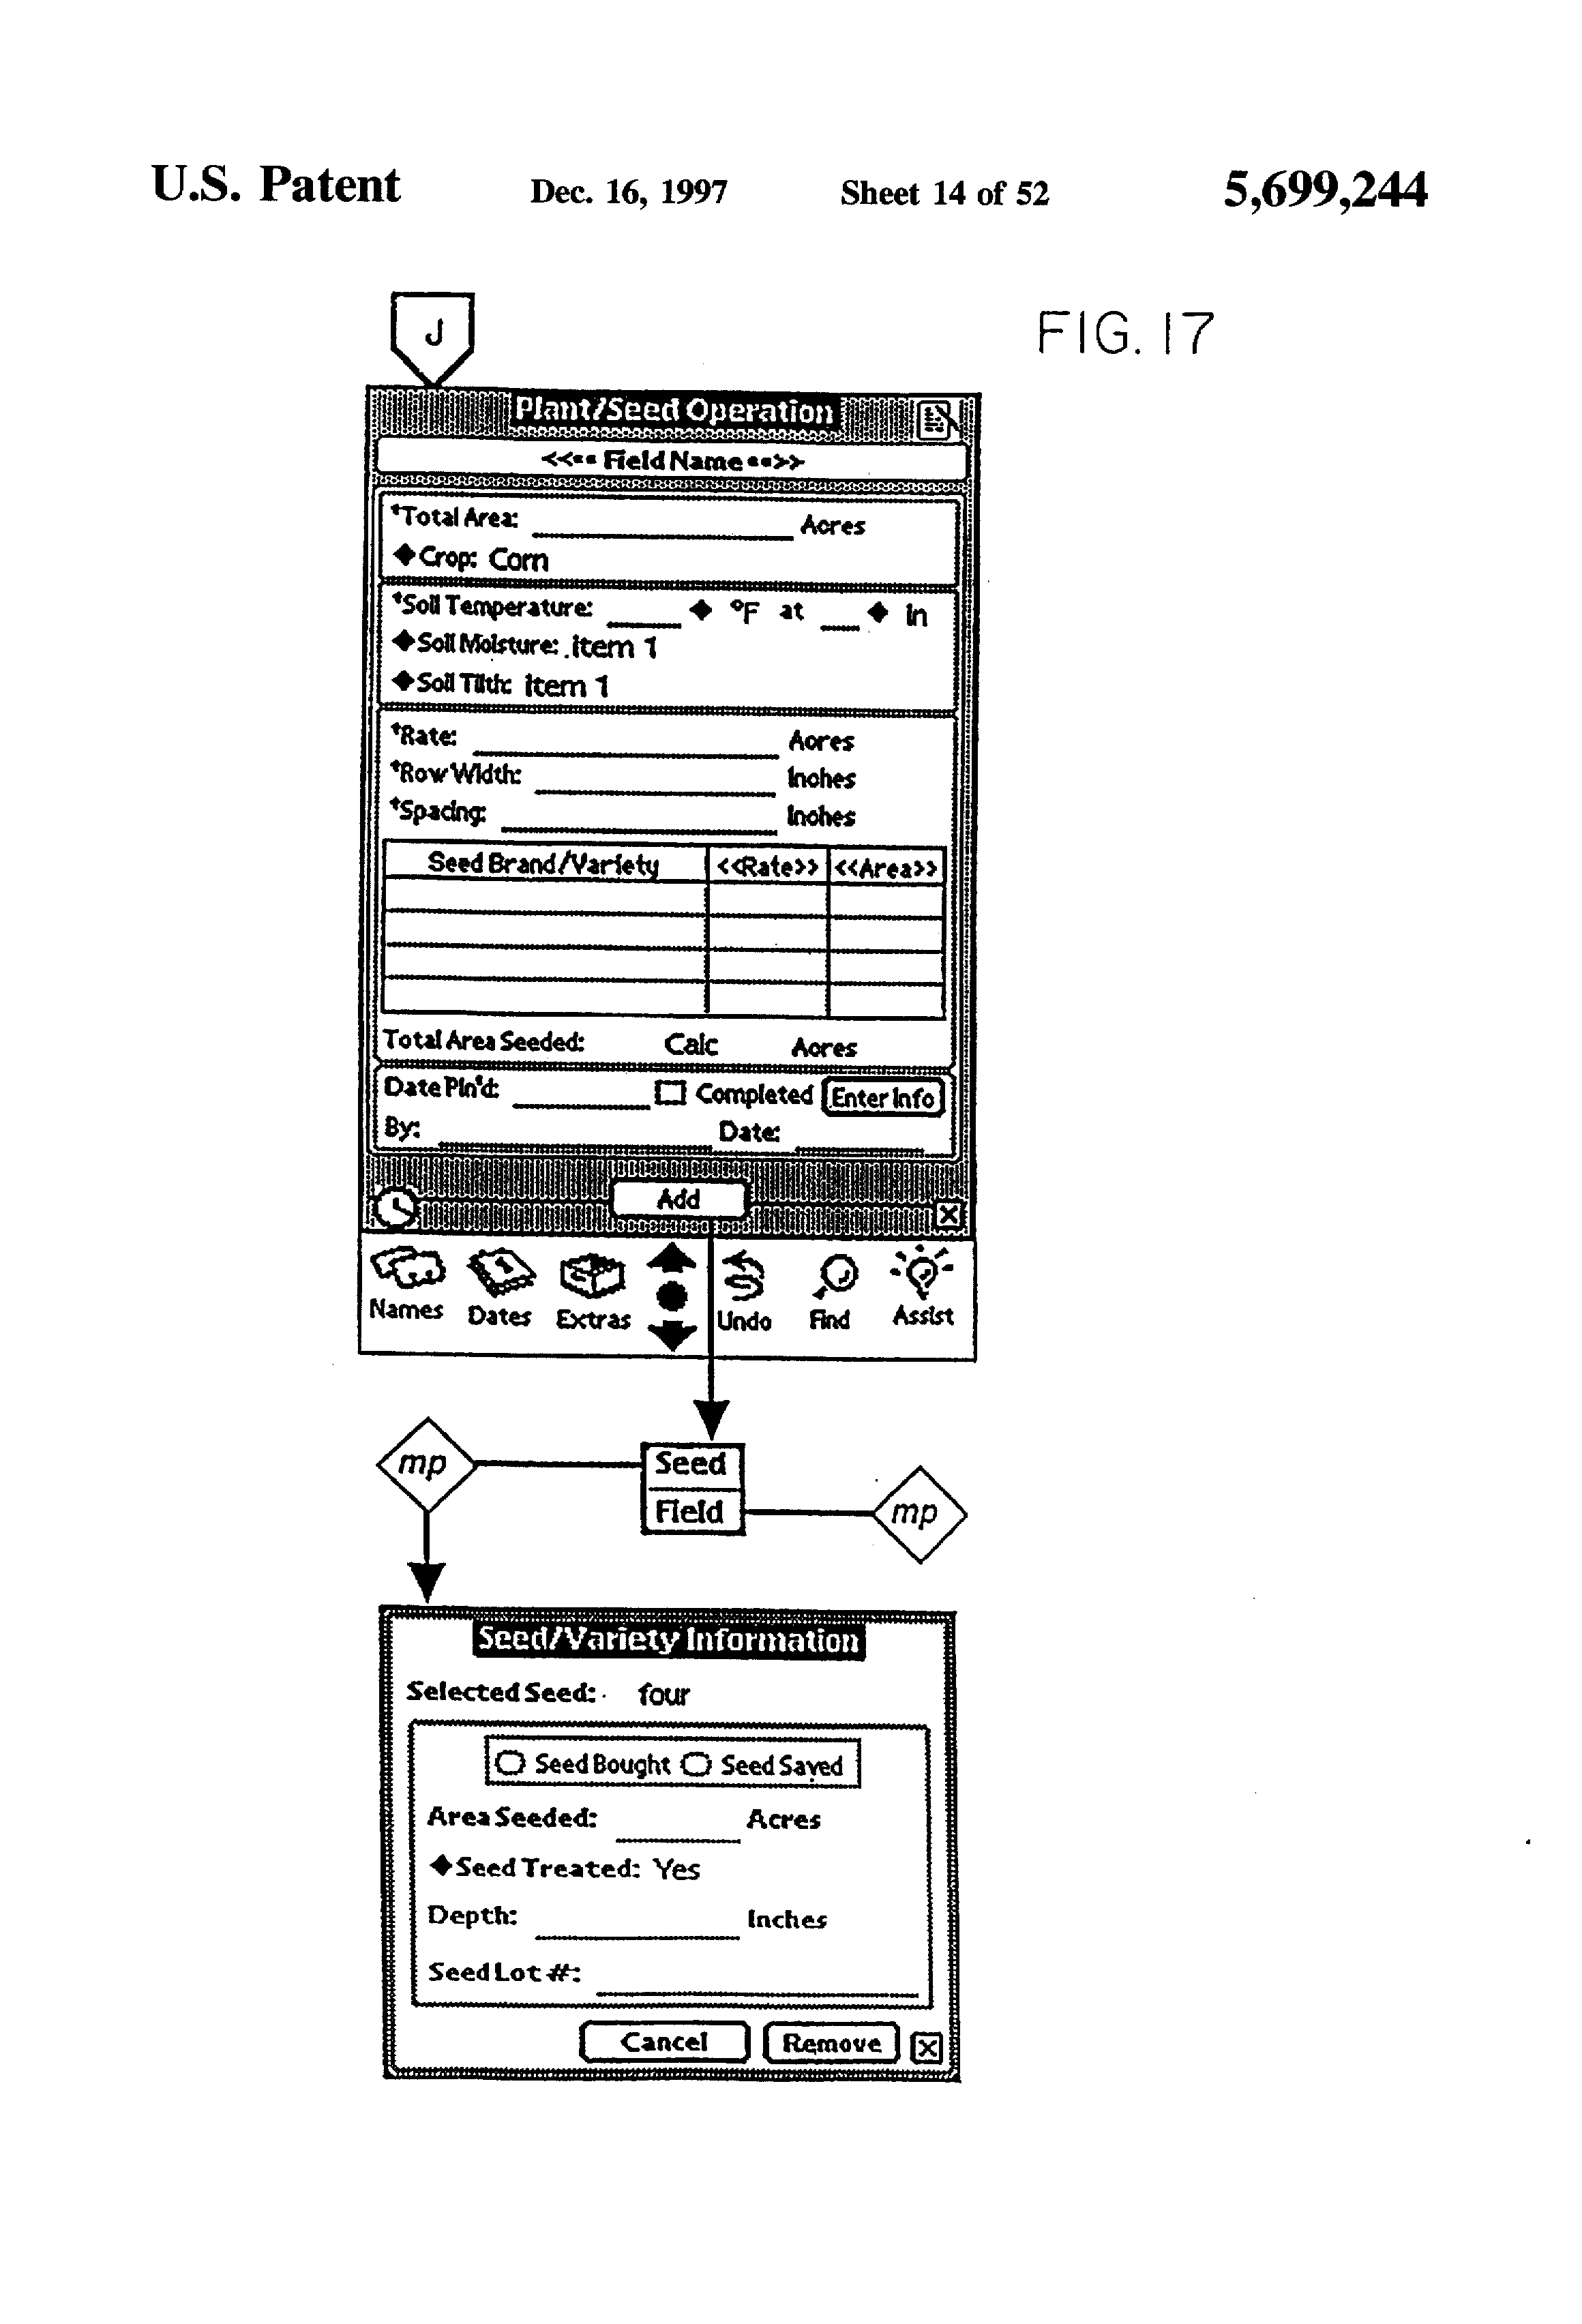 Patent US5699244 Handheld GUI PDA with GPSDGPS receiver for